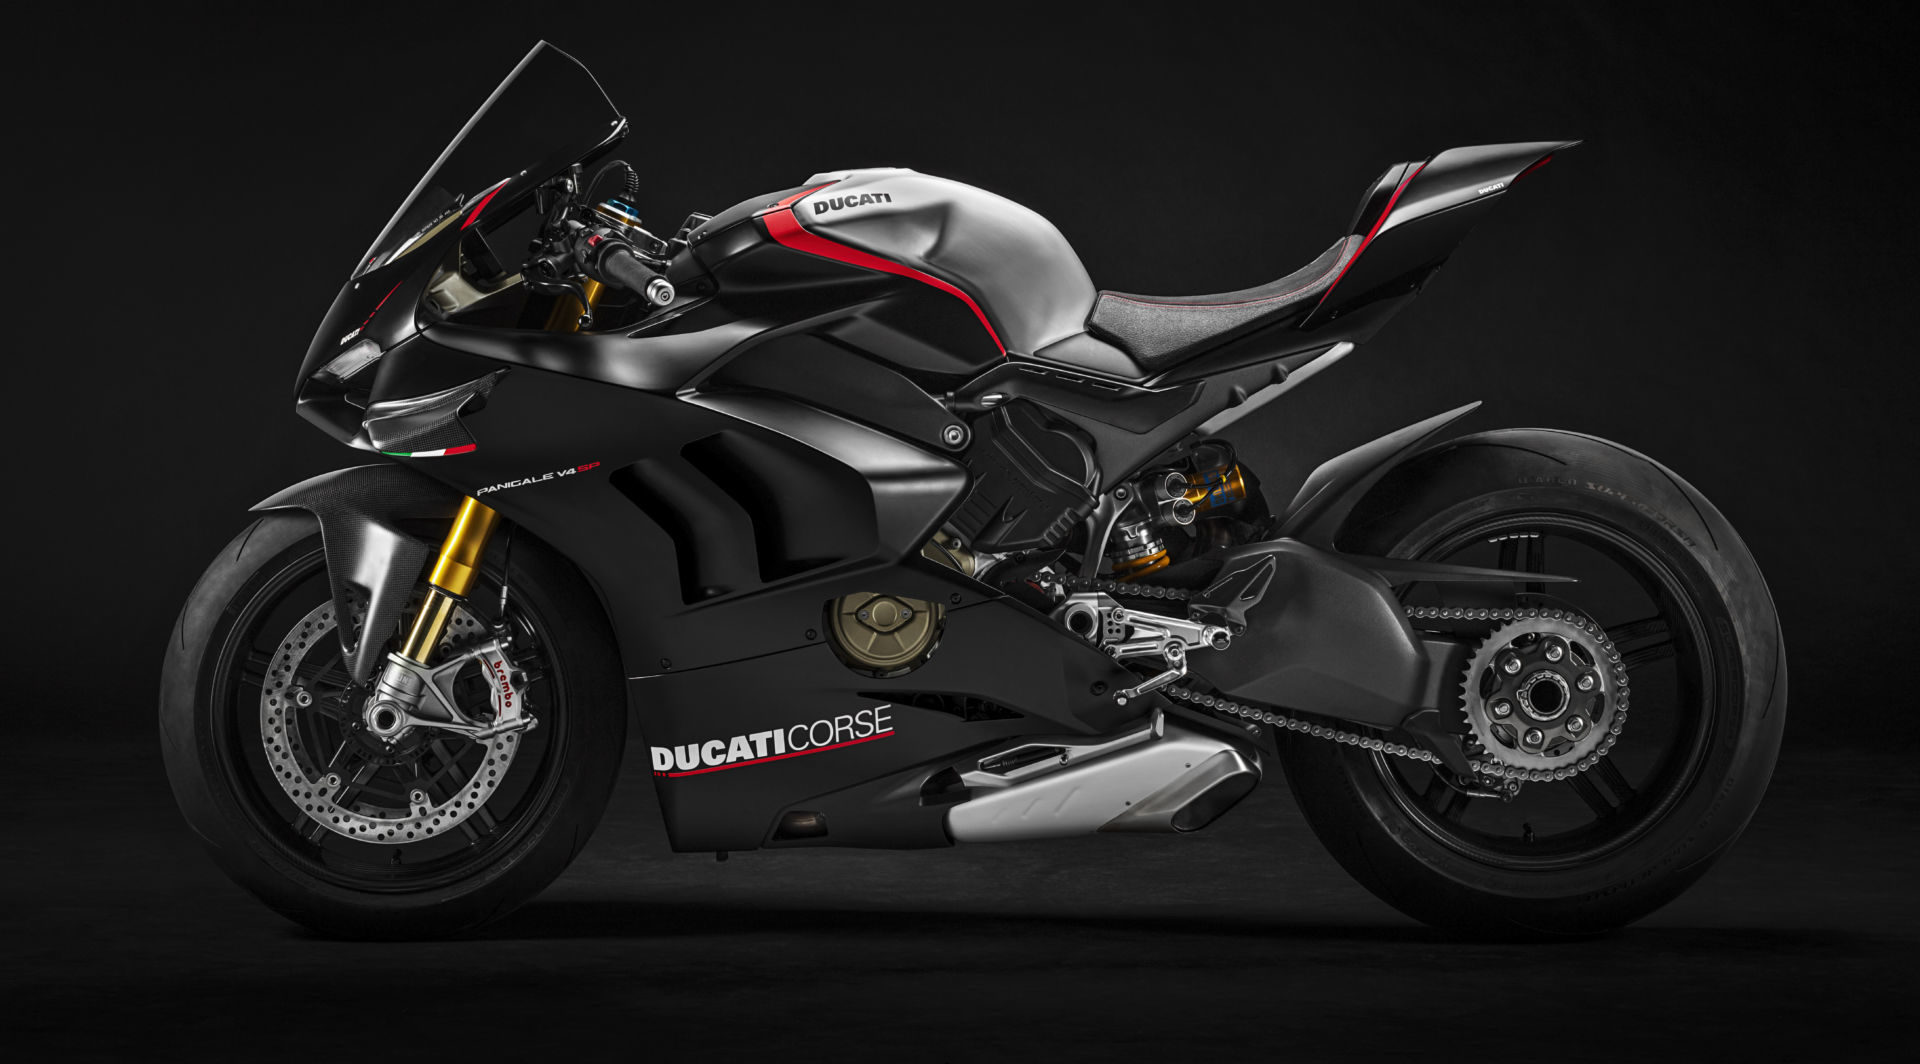 The new 2021 Ducati Panigale V4 SP comes with carbon-fiber wheels, Brembo Stylema R front brake calipers, a Brembo MCS front brake master cylinder, and a dry clutch. Photo courtesy Ducati.